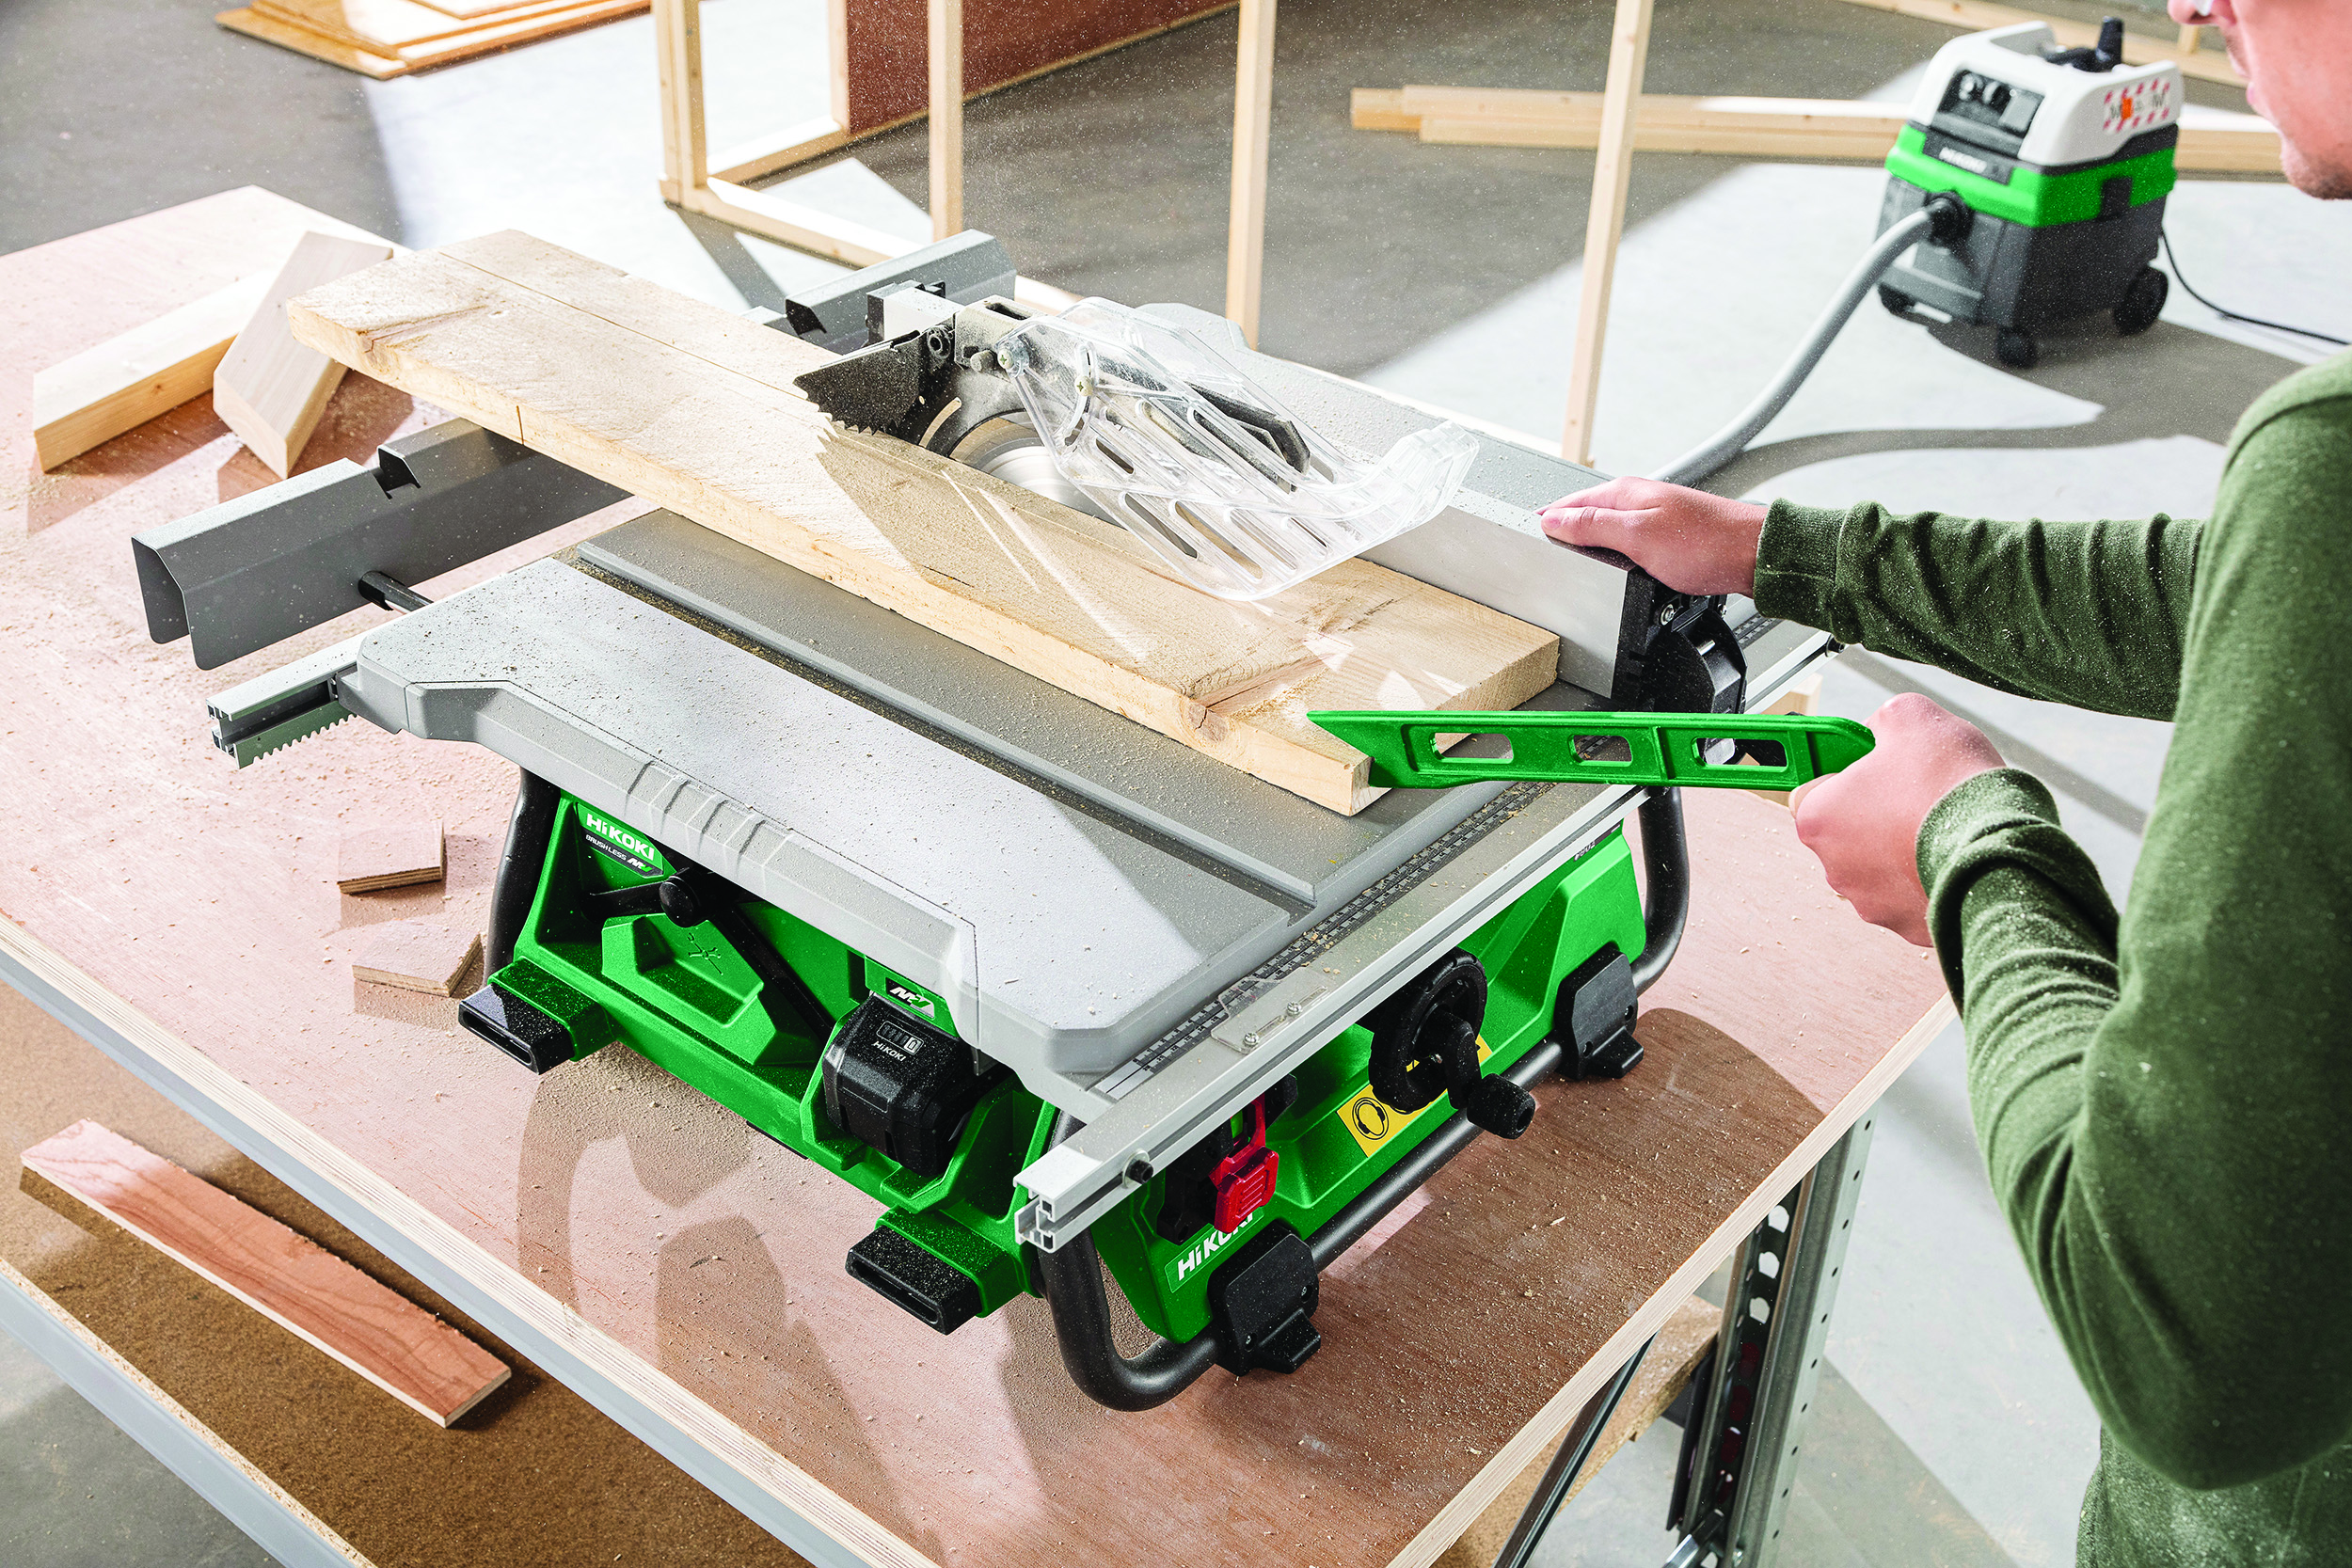 HiKOKI Power Tools UK launches industry first  C3610DRJ cordless table saw